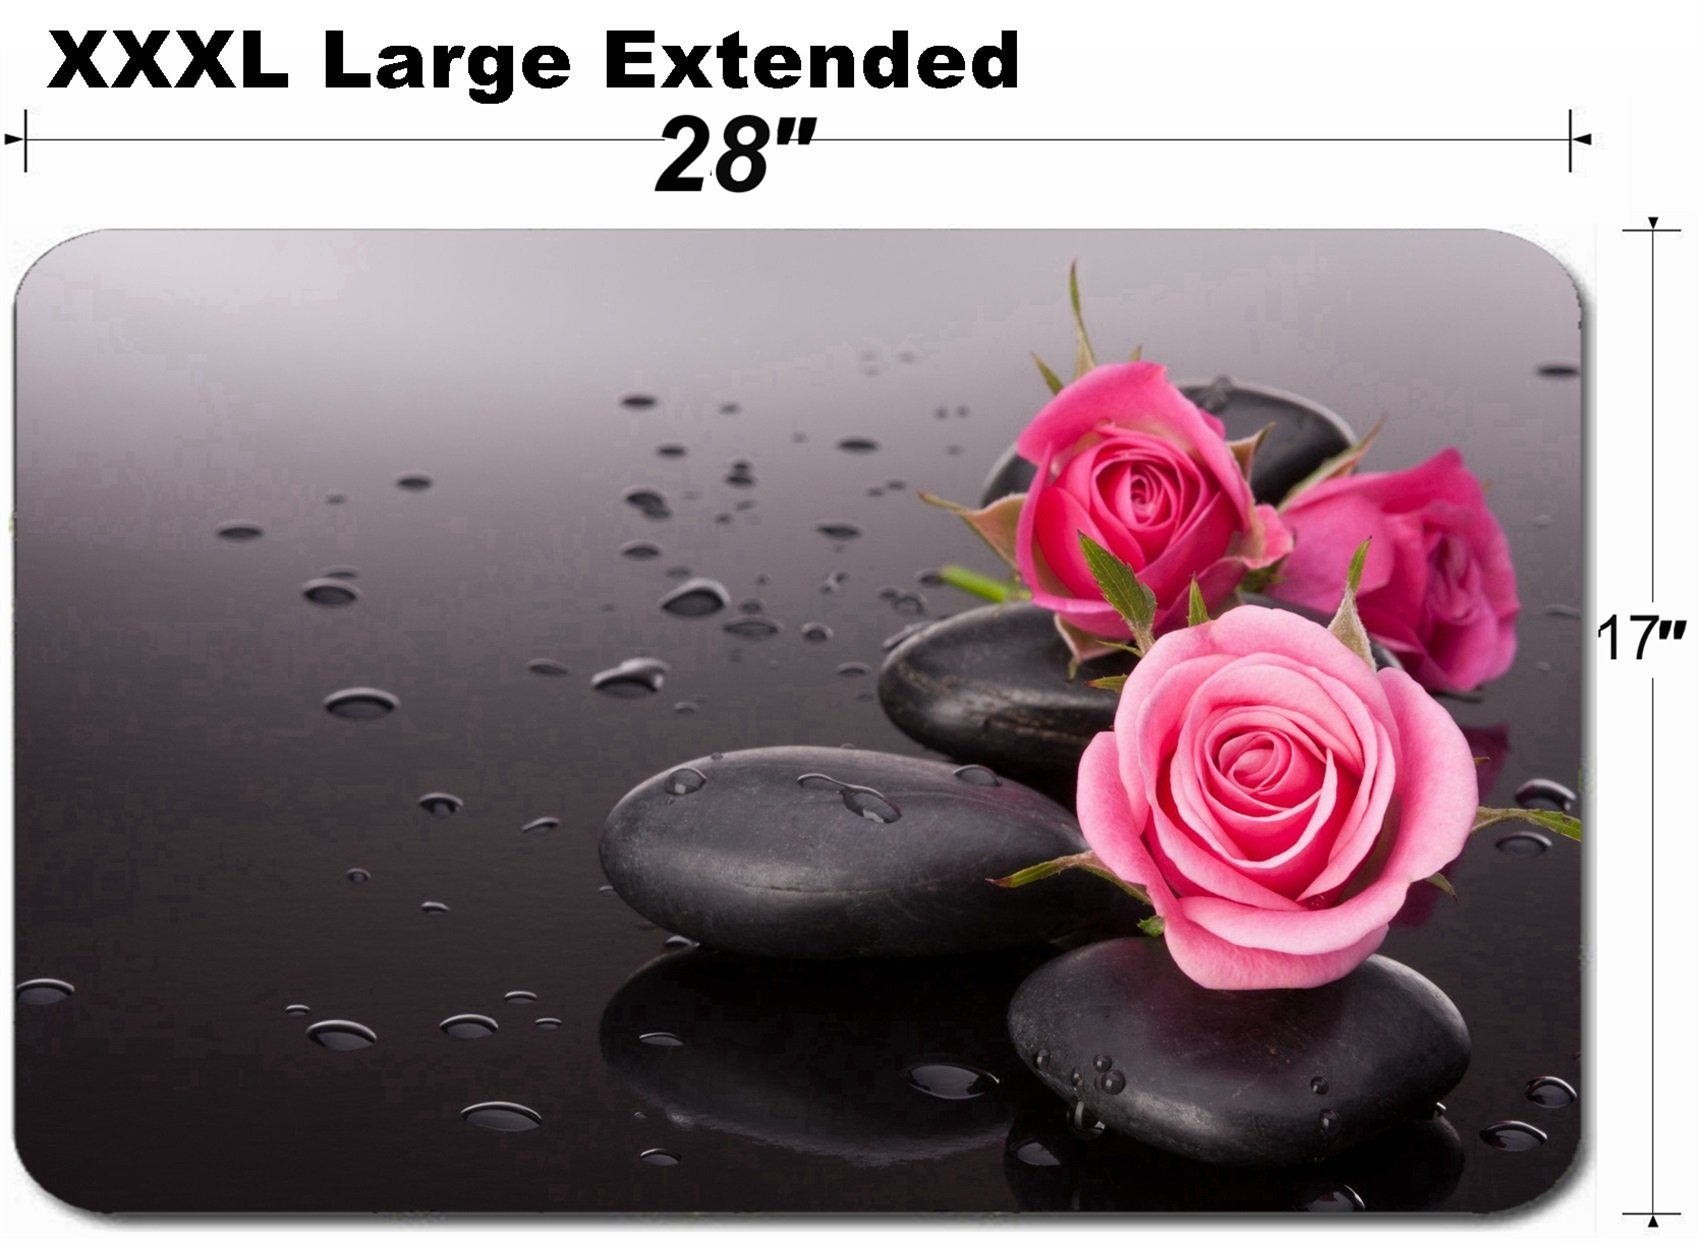 MSD Large Table Mat Non-Slip Natural Rubber Desk Pads Image 26105316 Spa Stone and Rose Flowers Still Life Healthcare Concept